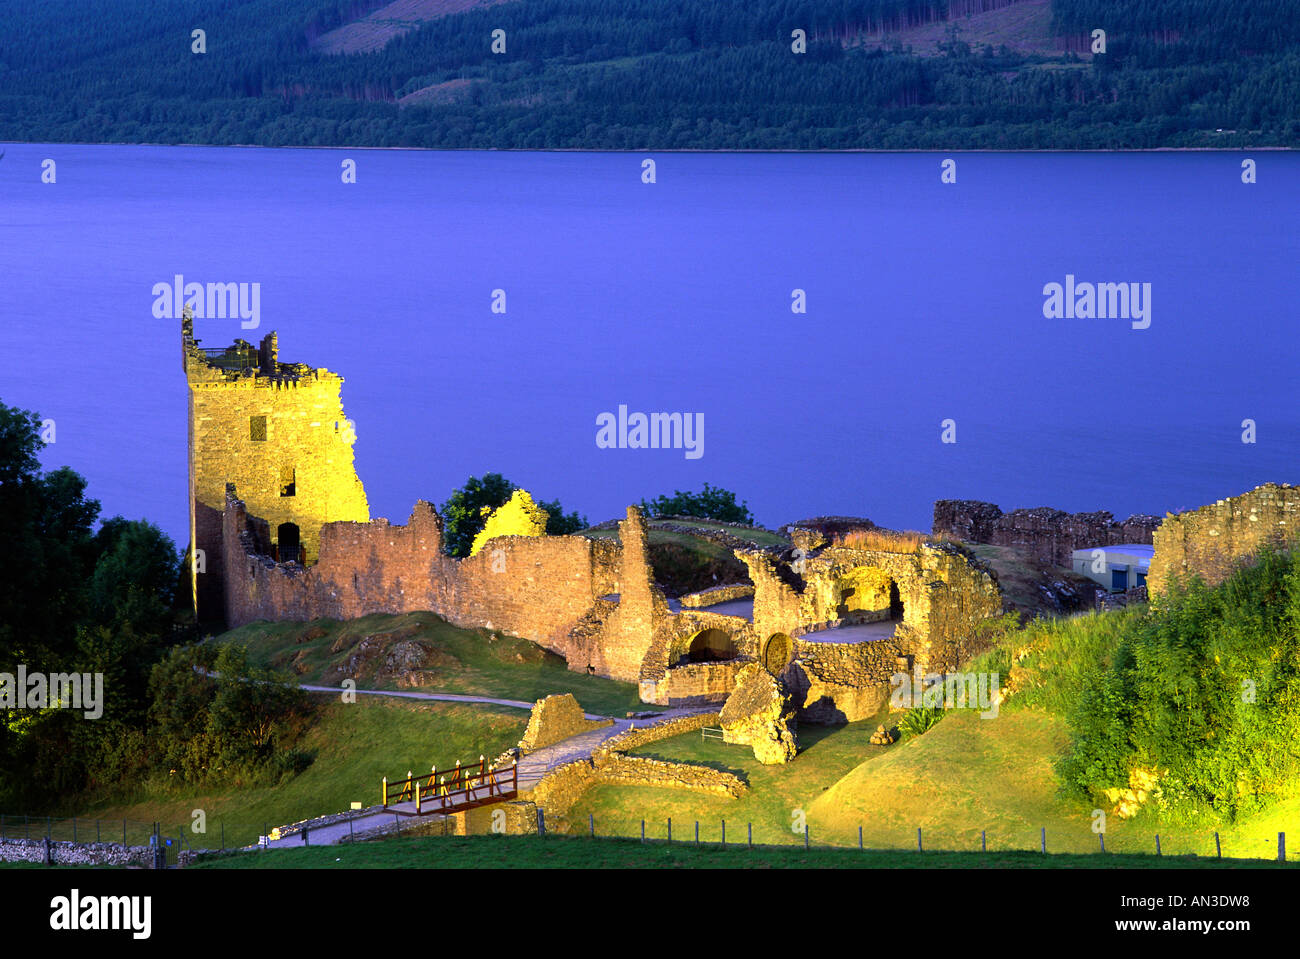 Urquhart Castle At Night Urquhart castl.